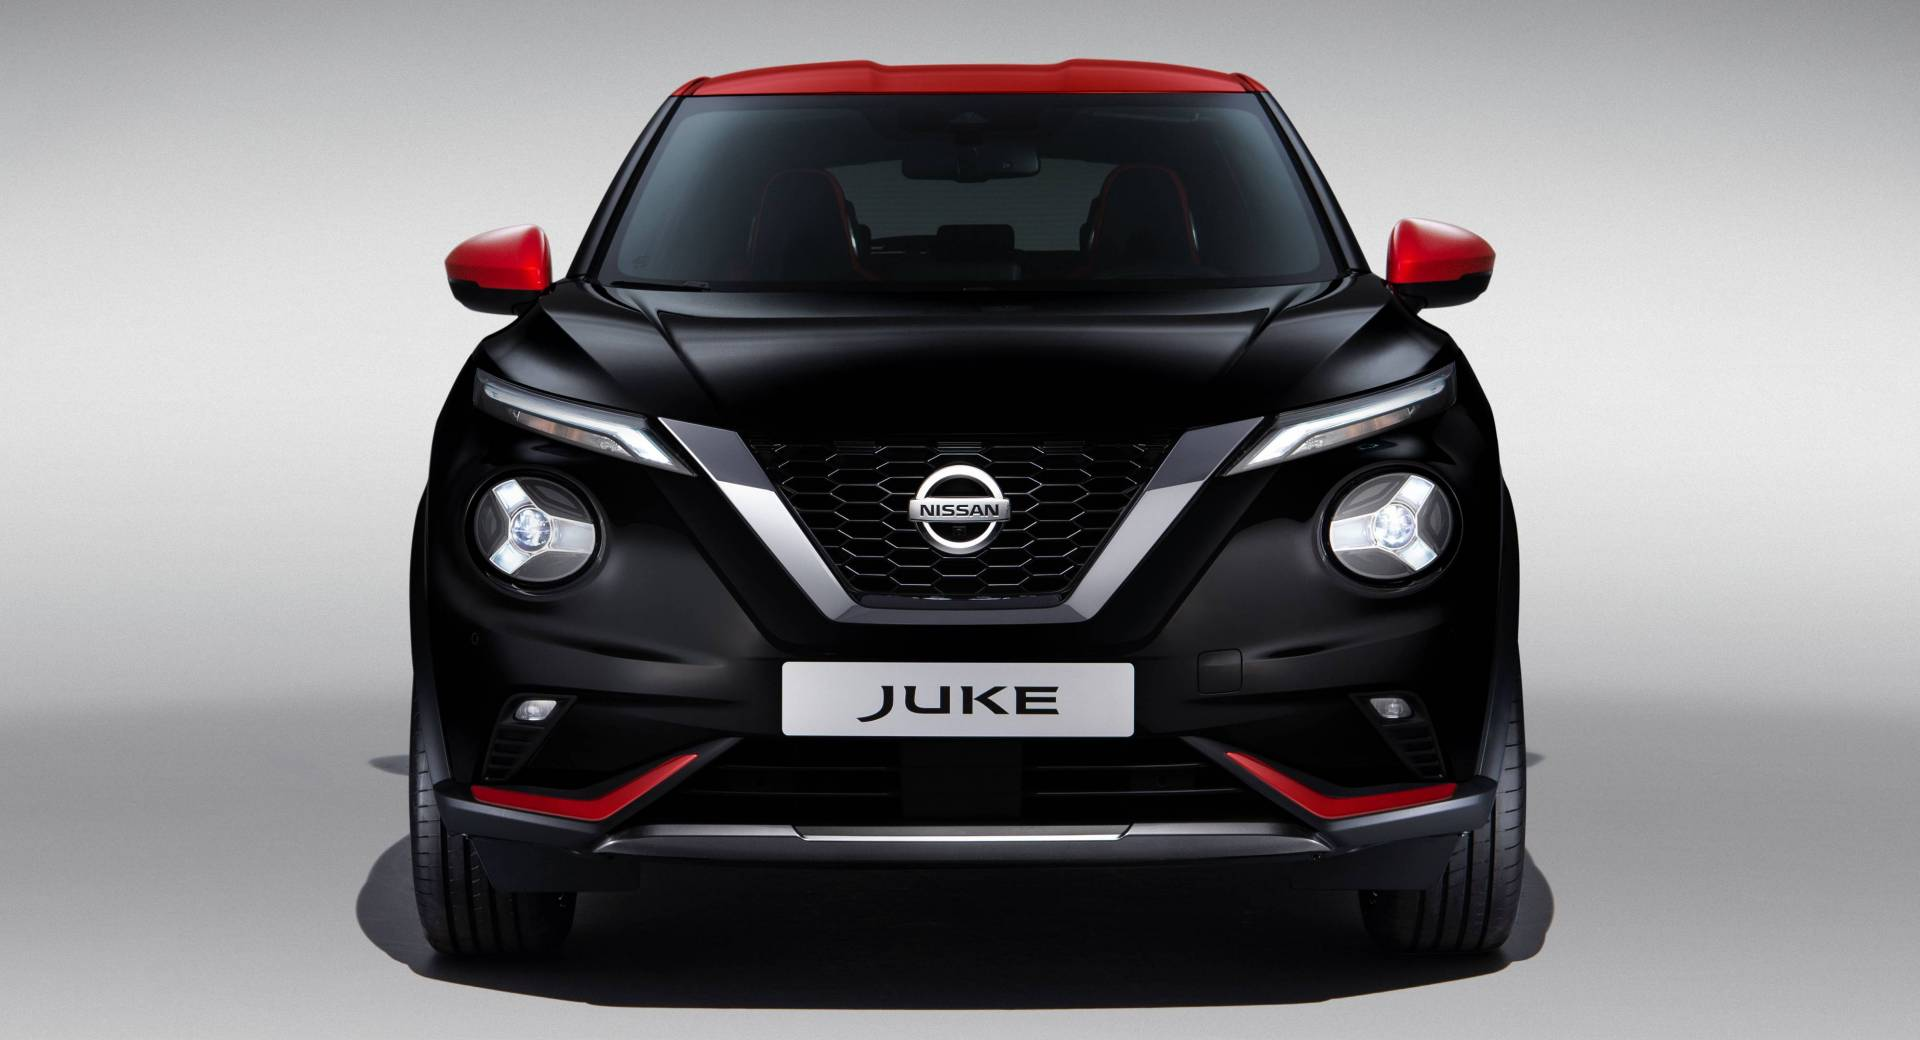 2020 nissan juke priced from  u00a317 395 in uk